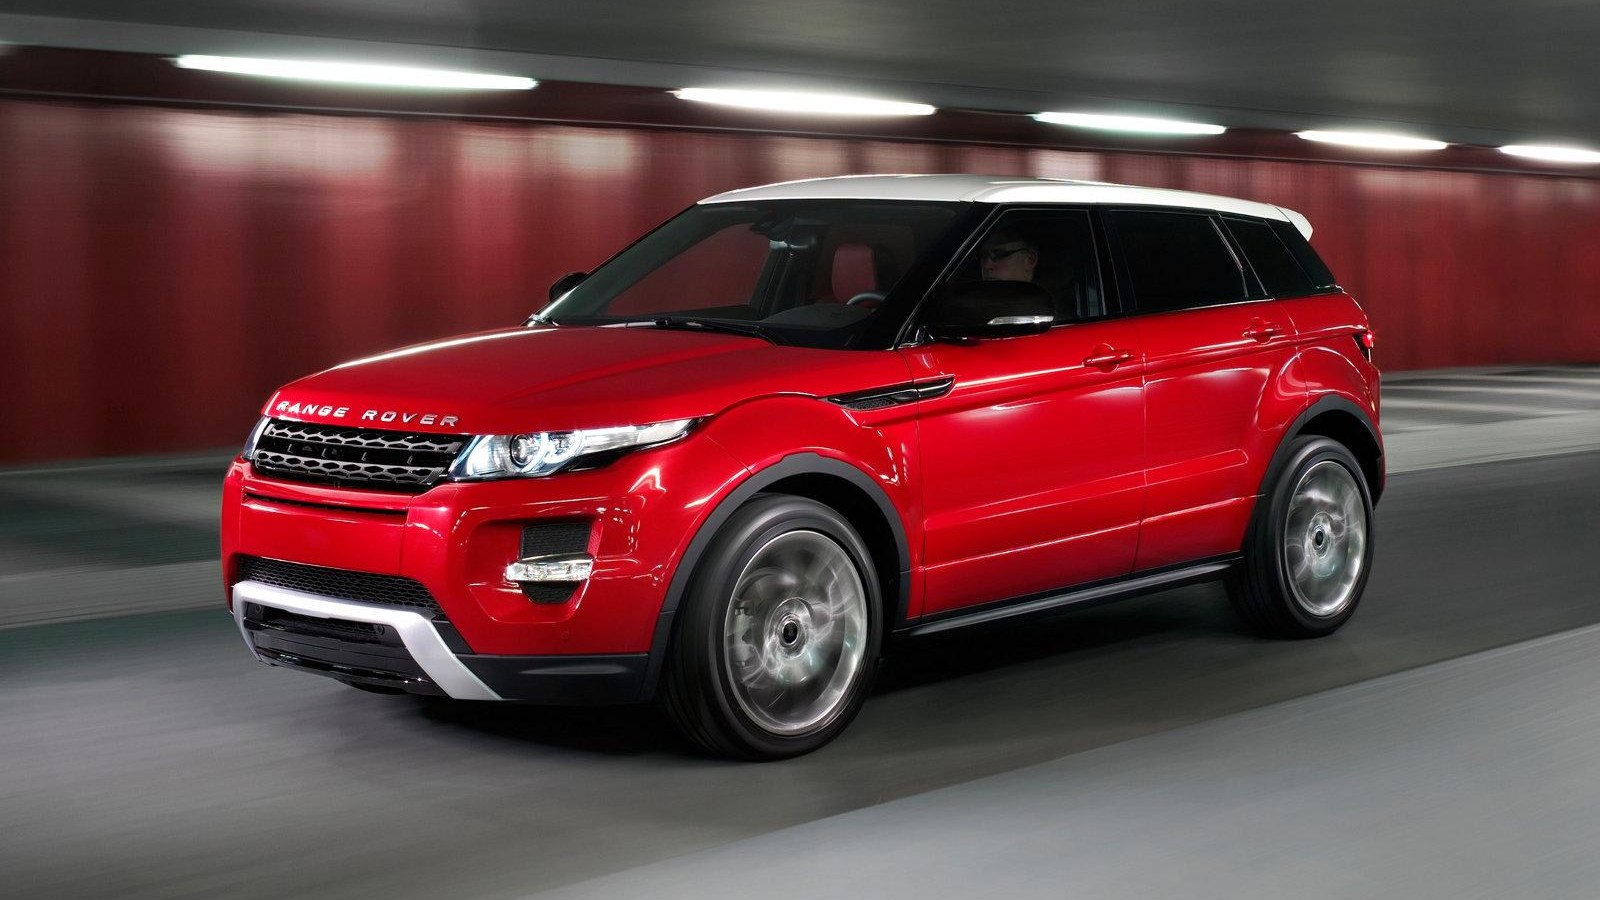 2012 range rover evoque 5 door compact suv to be revealed in l a suv buster. Black Bedroom Furniture Sets. Home Design Ideas